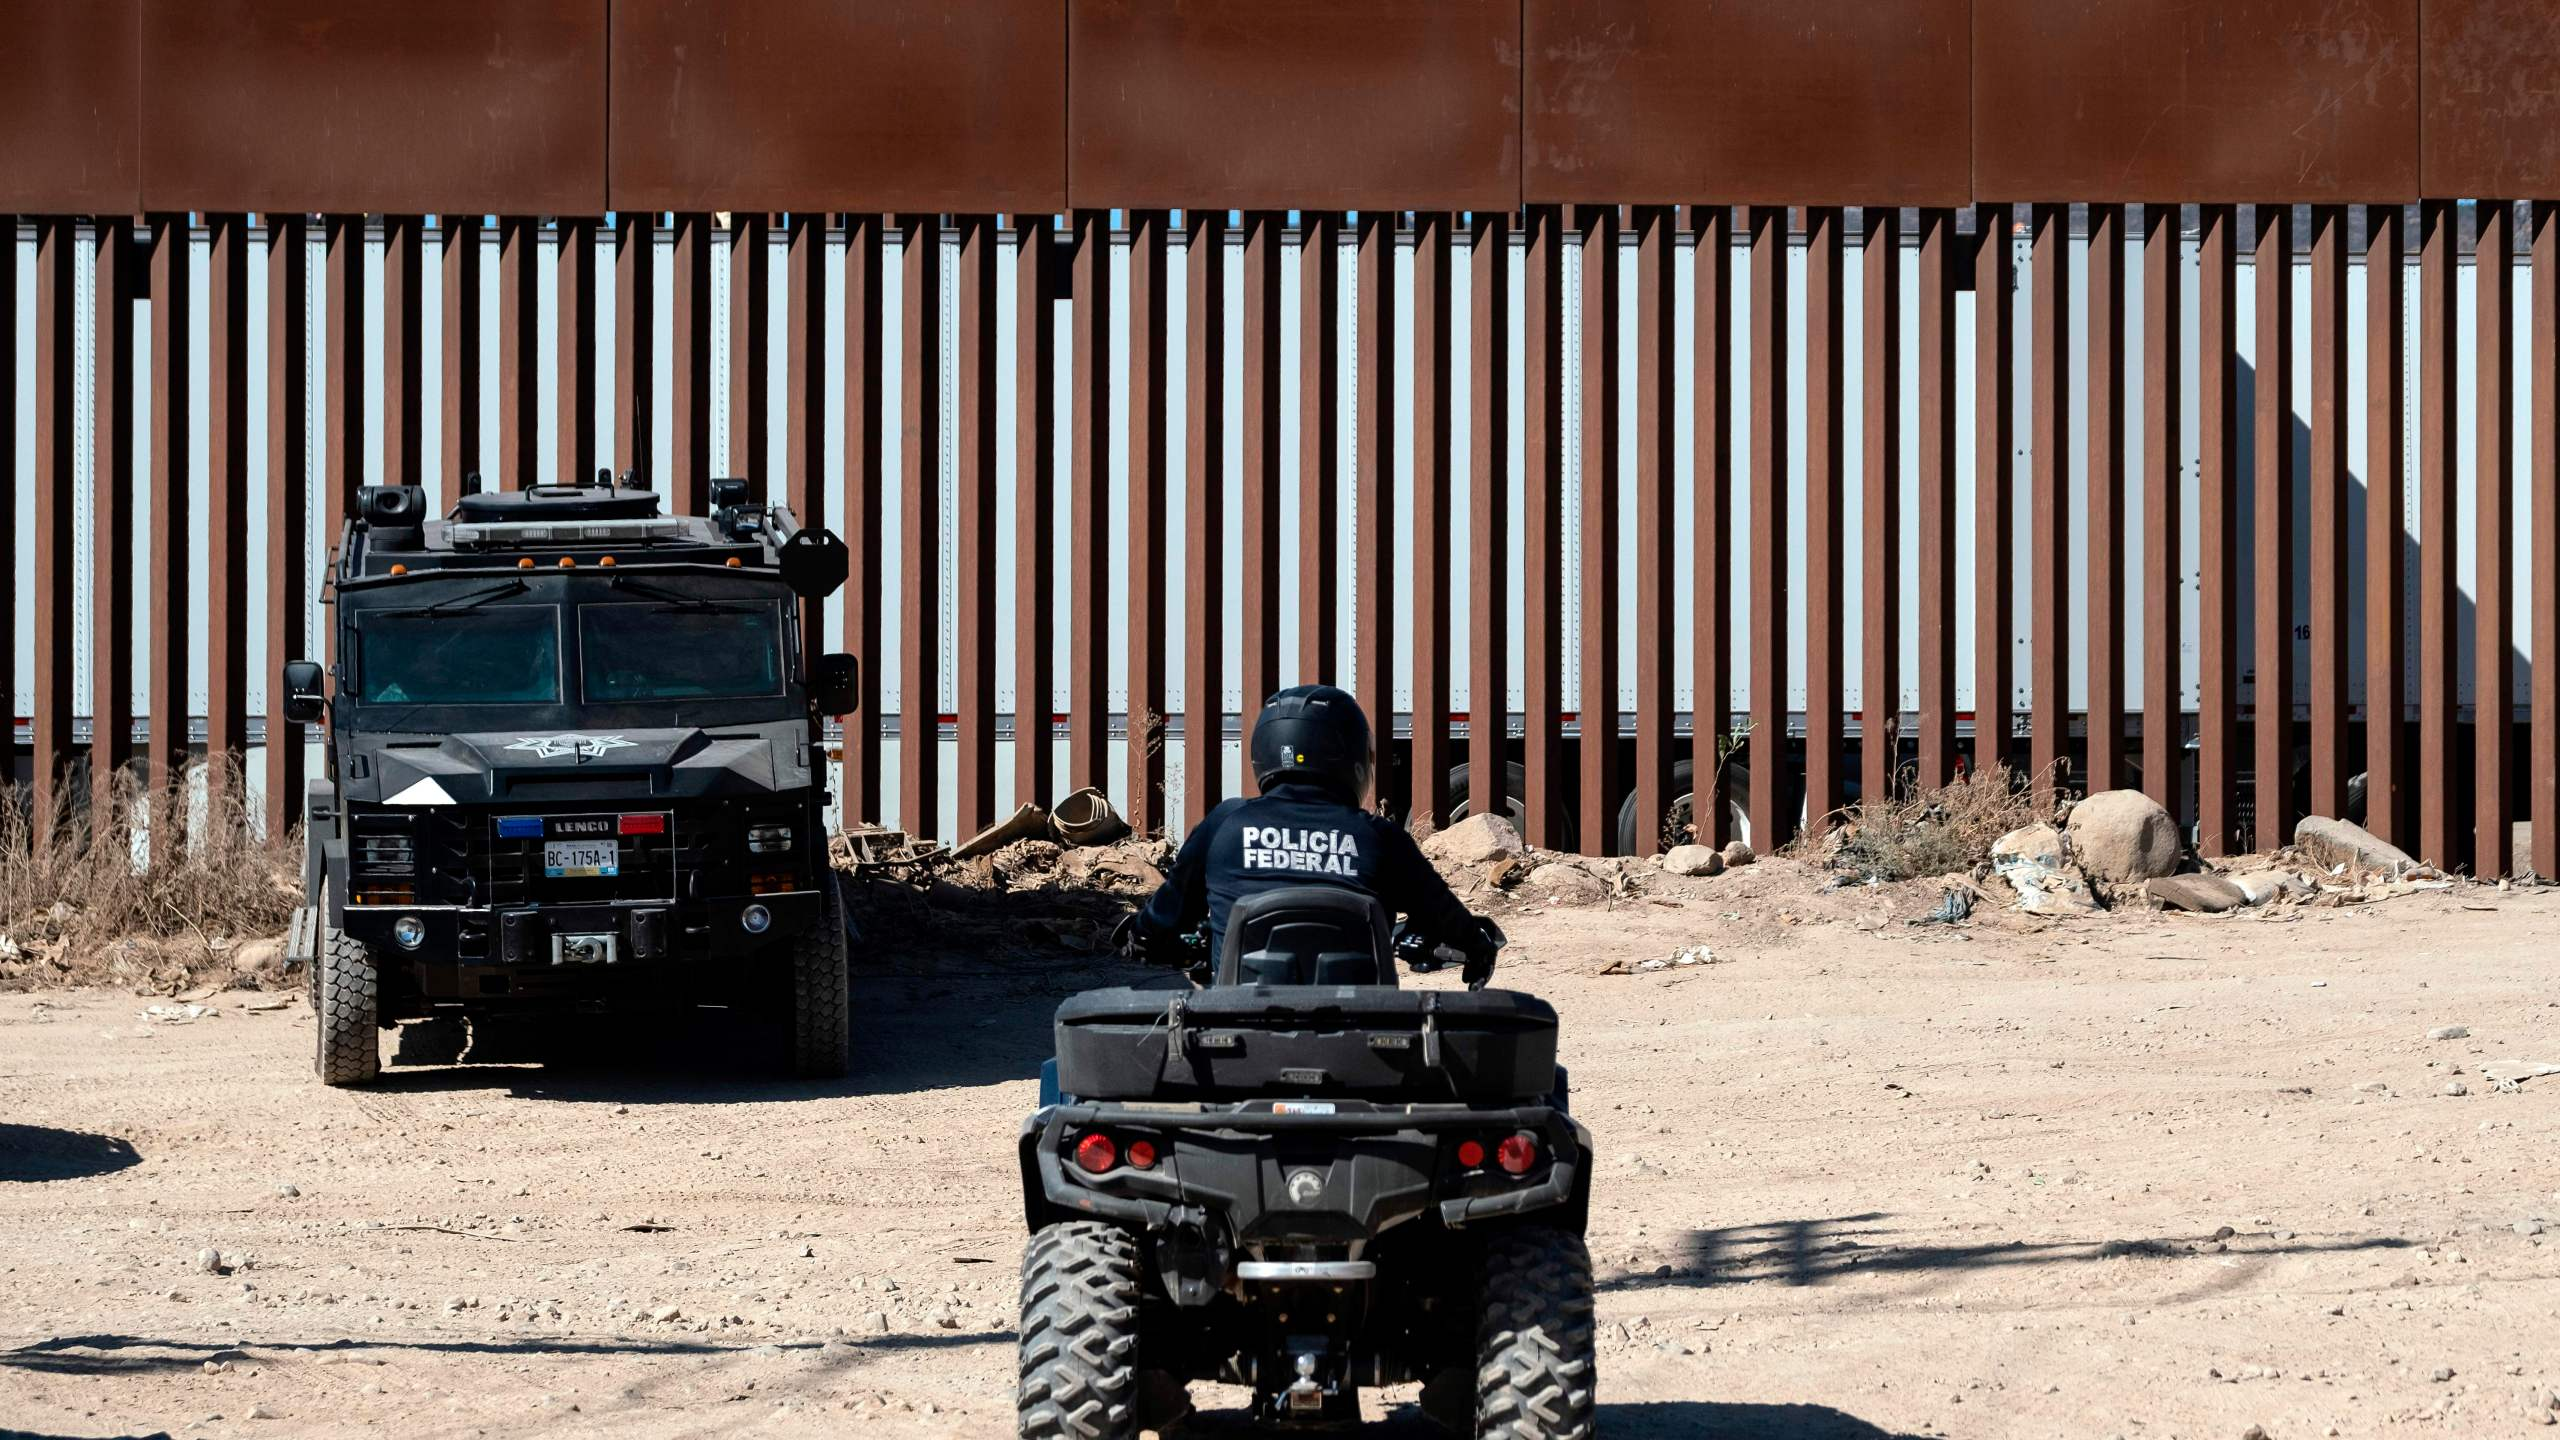 Mexican security forces patrol near the U.S.-Mexico border fence in Tijuana, Mexico, on Sept. 18, 2019. (Credit: Guillermo Arias/AFP/Getty Images)